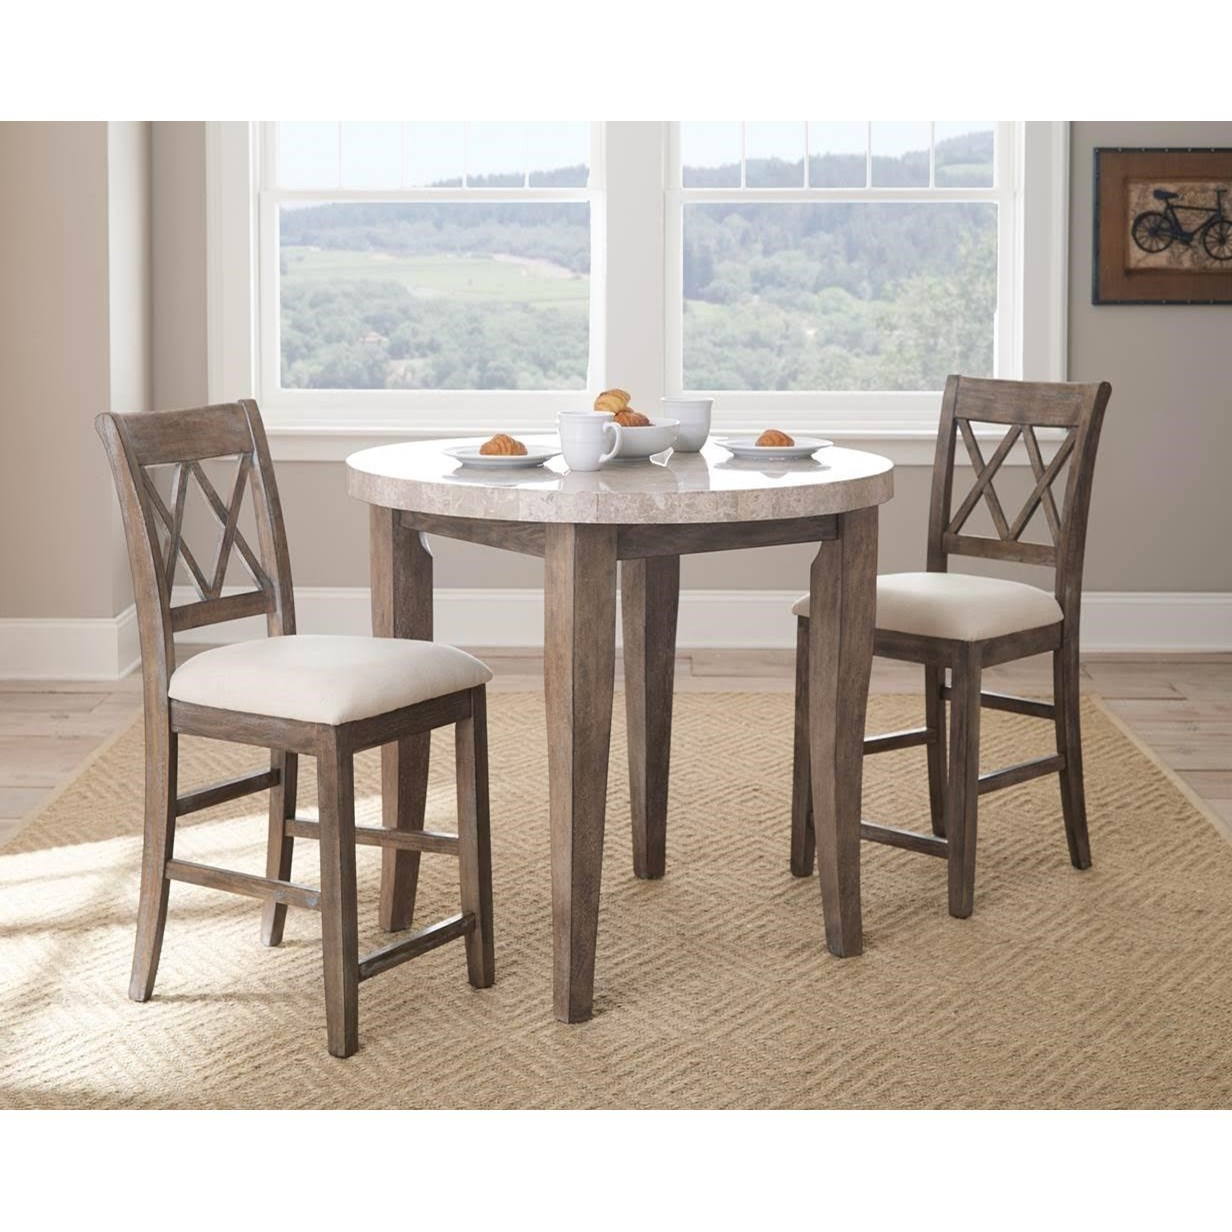 Beau Belfort Essentials Franco 3 Piece Marble Counter Height Dining Set